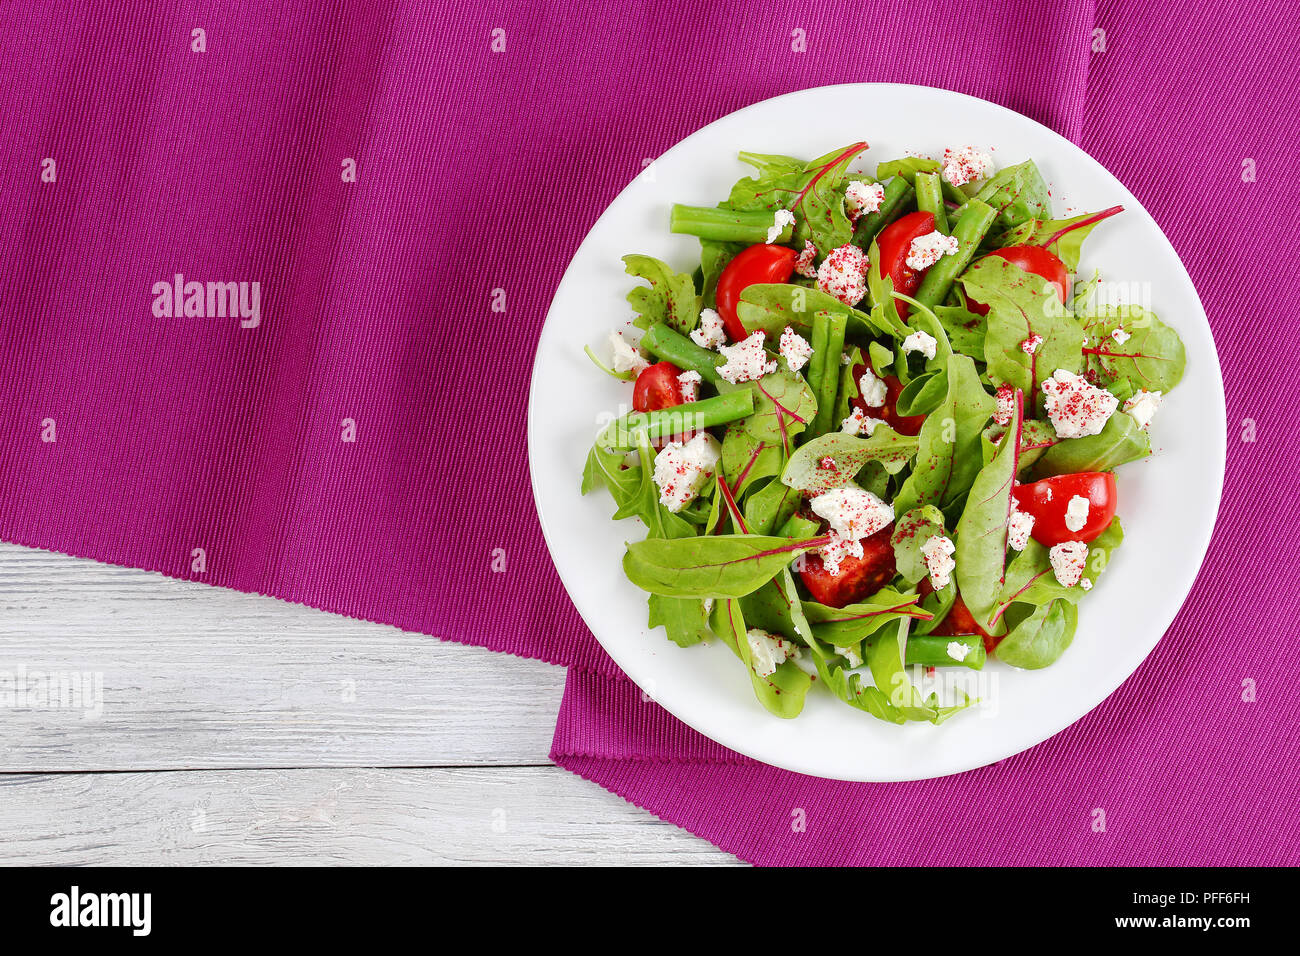 Outstanding Delicious Healthy Low Calories Salad Of Green Beans Chard Interior Design Ideas Clesiryabchikinfo